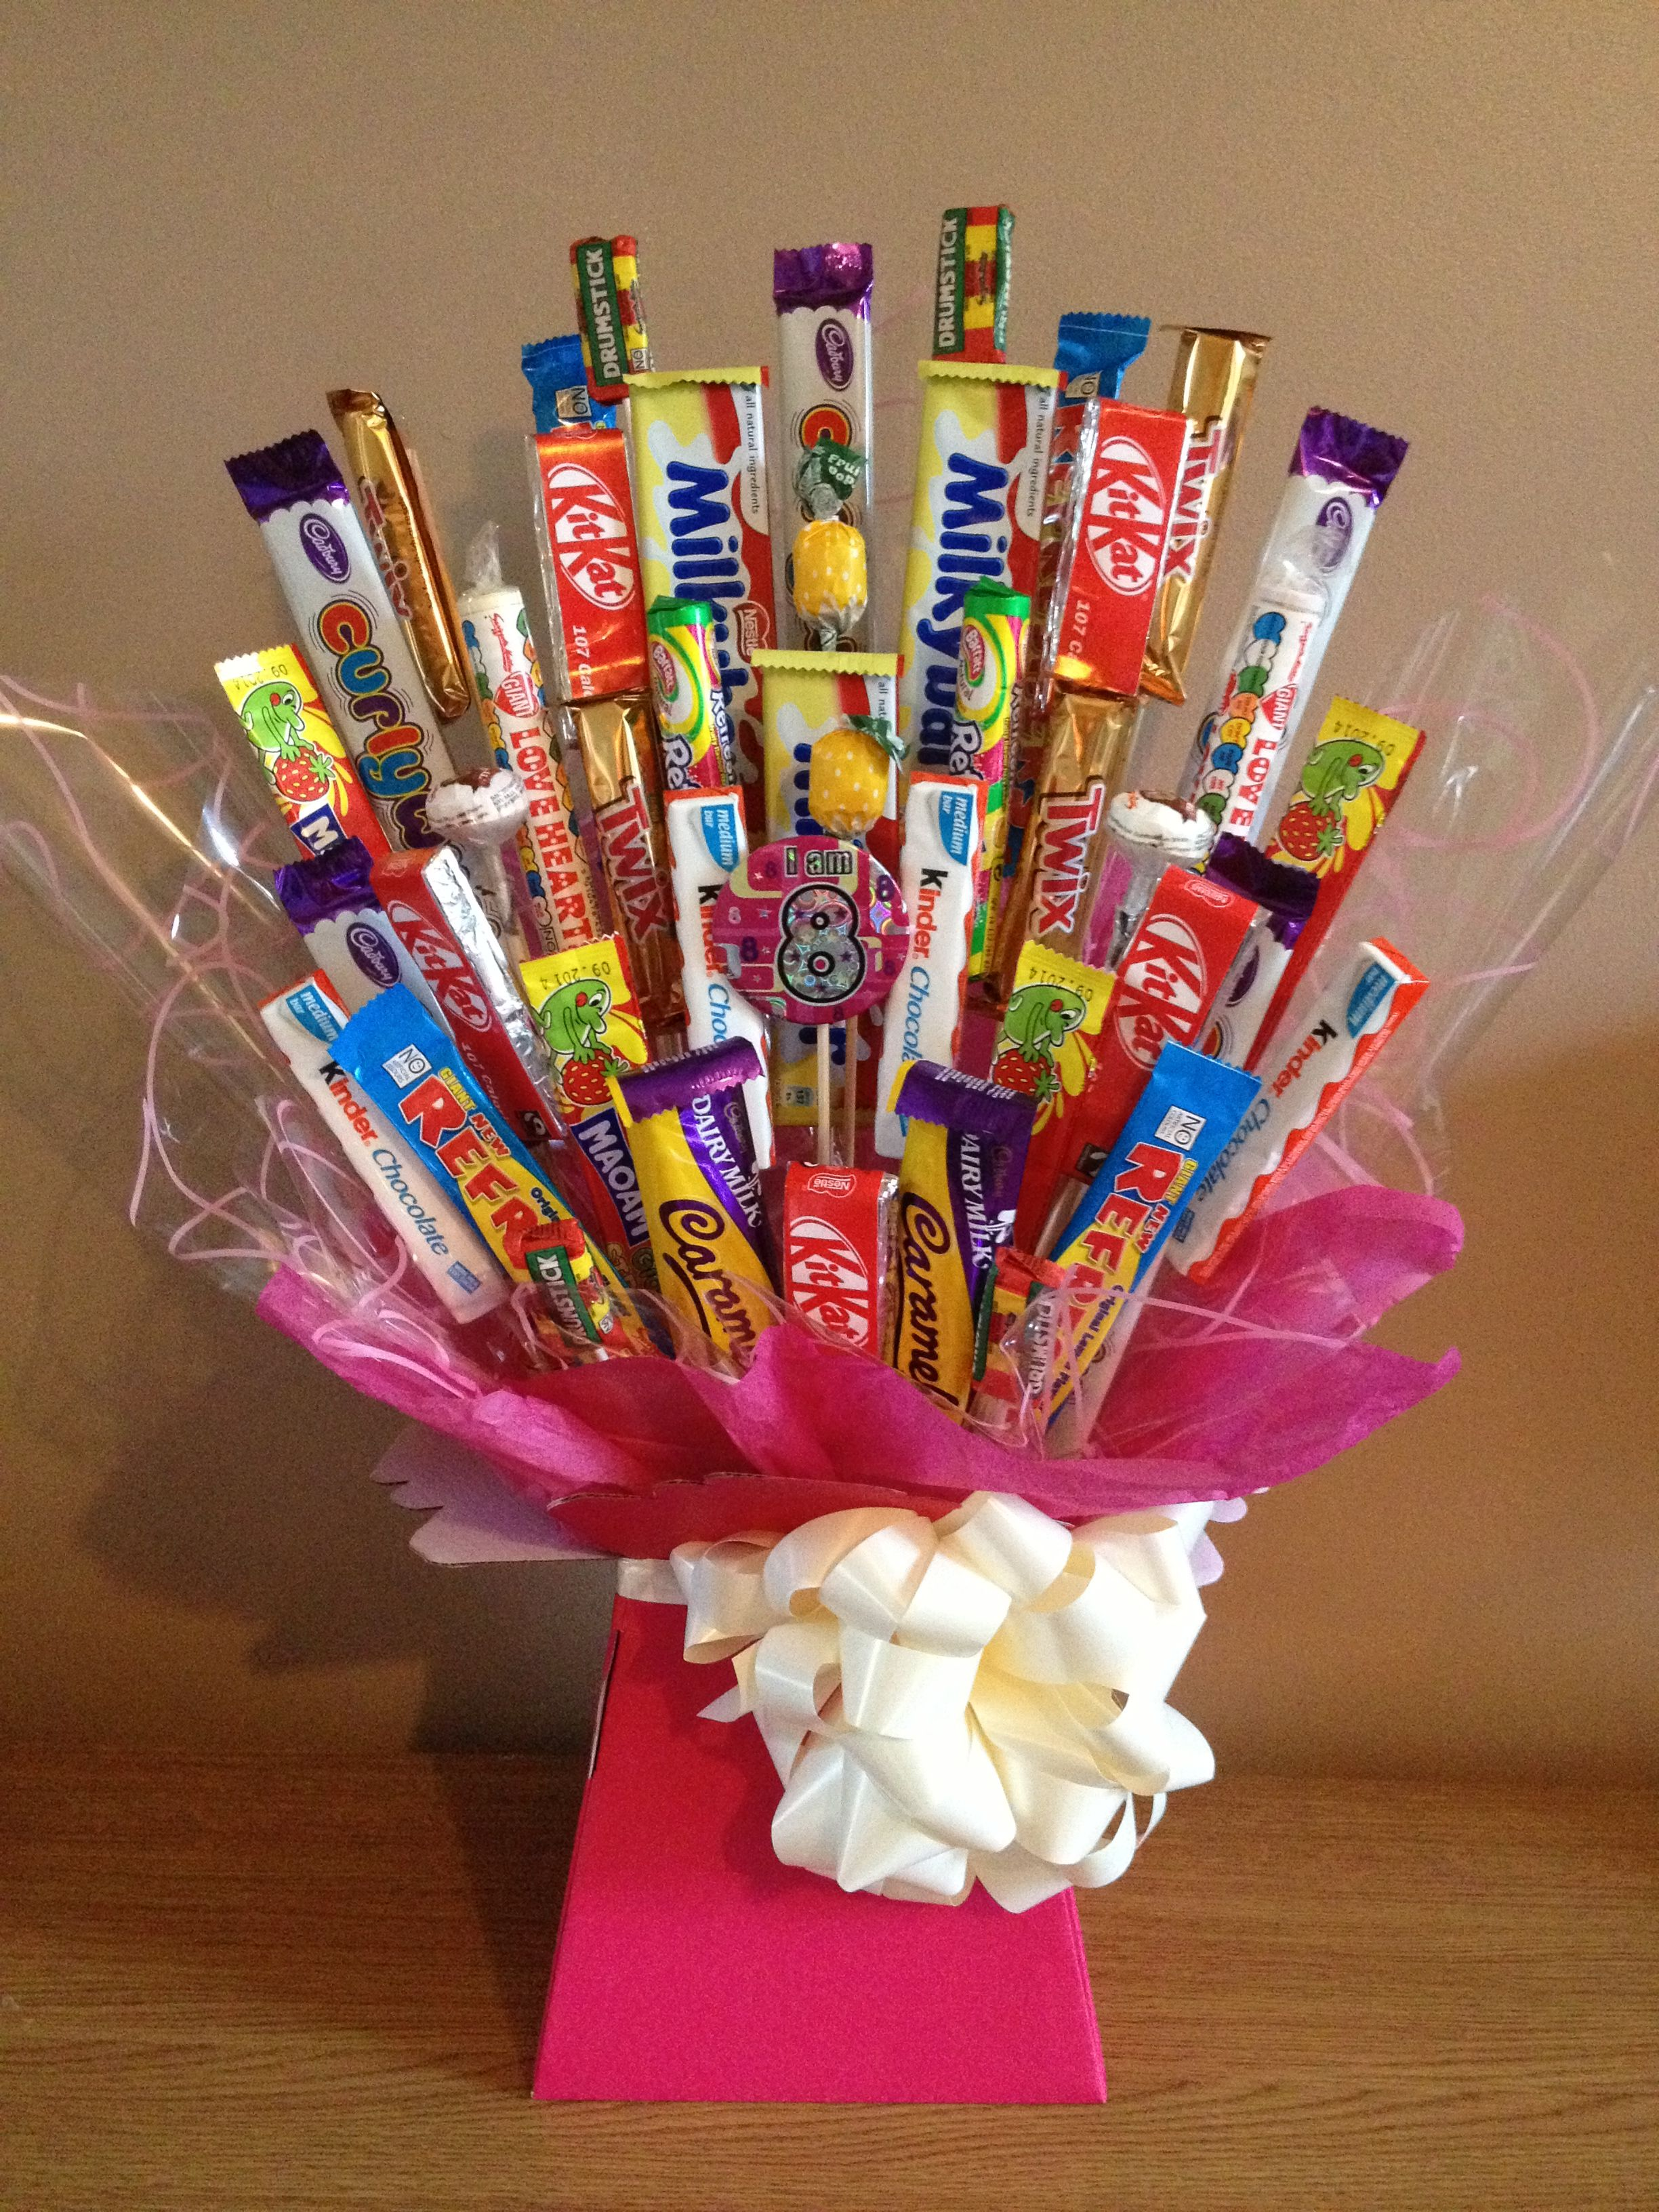 diy easter gift basket ideas for kids to make  badges flowers  -  diy easter gift basket ideas for kids to make